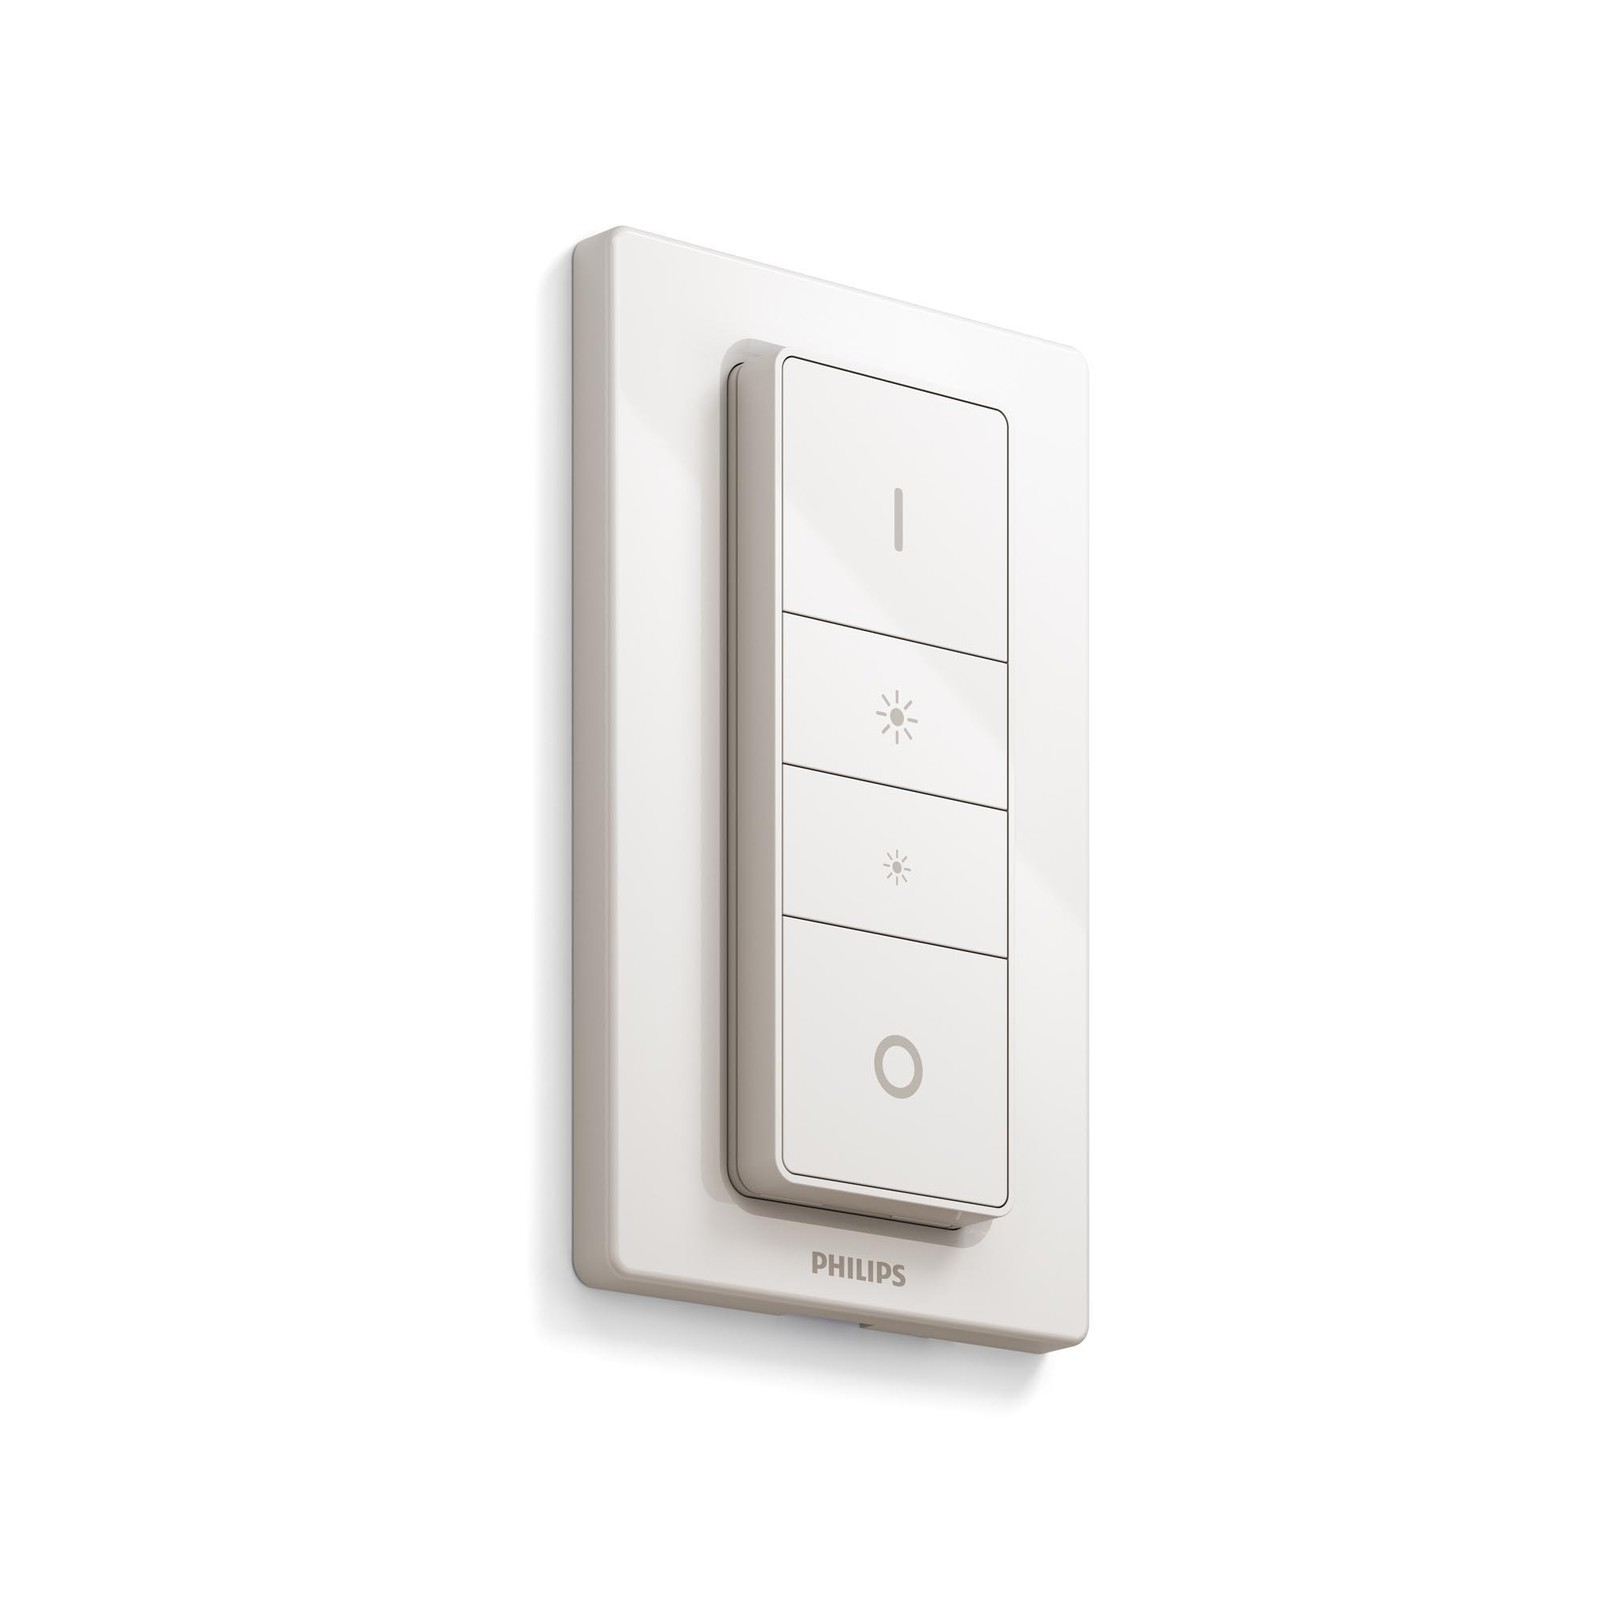 Dimmer Switch Philips Hue Tap Vs Philips Dimmer Switch Which Should You Buy